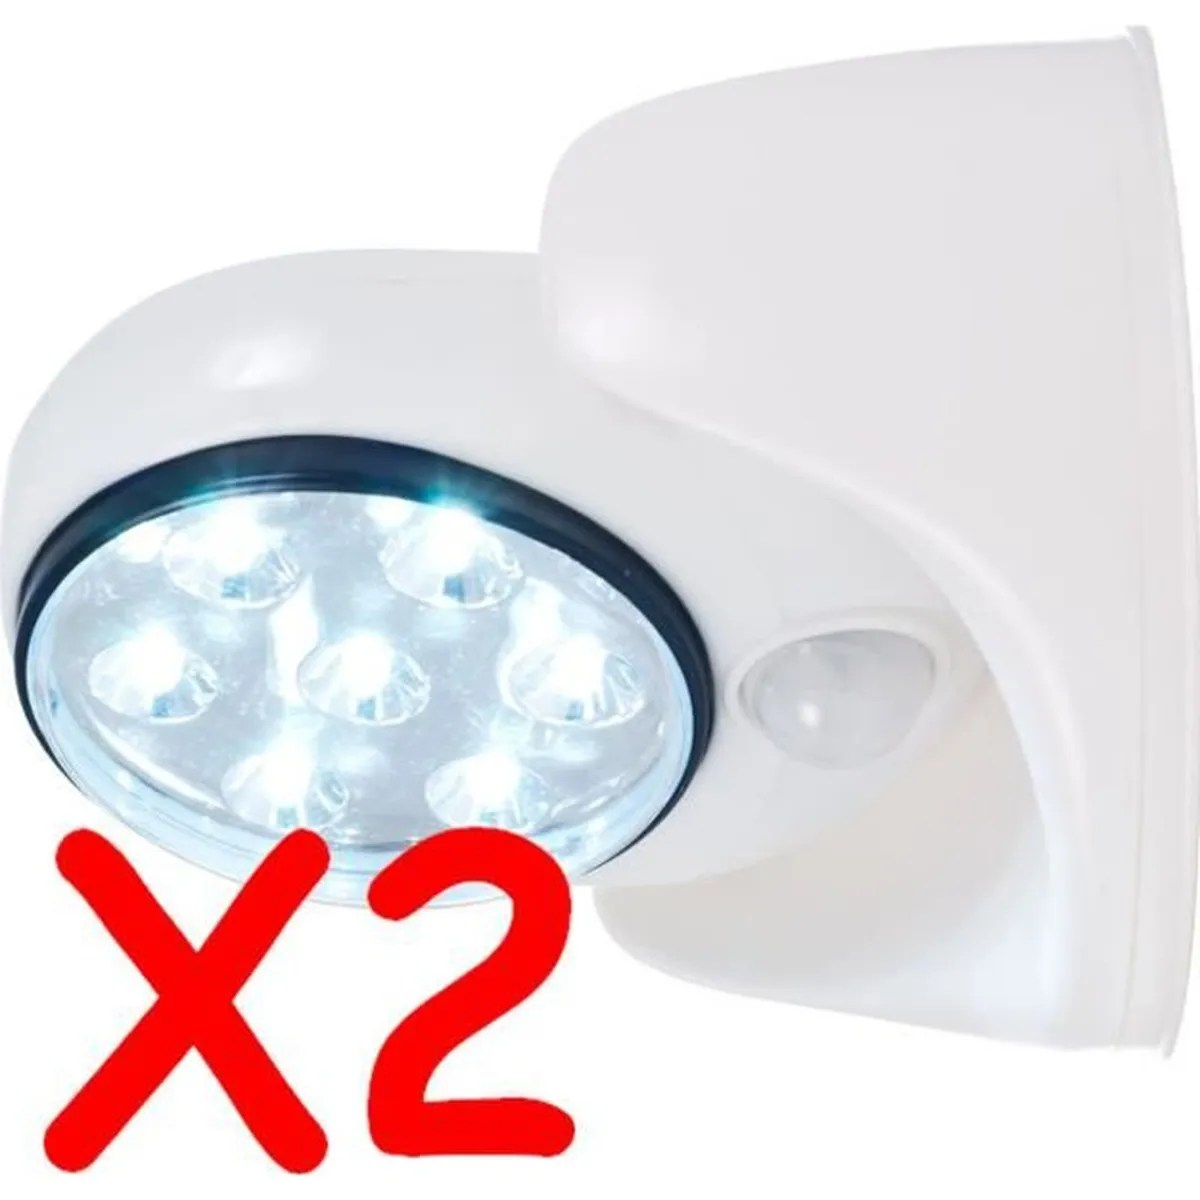 Spot Led Exterieur A Pile Lot 2 Spot Lampe Detecteur De Mouvement 7 Led Exterieur Interieur